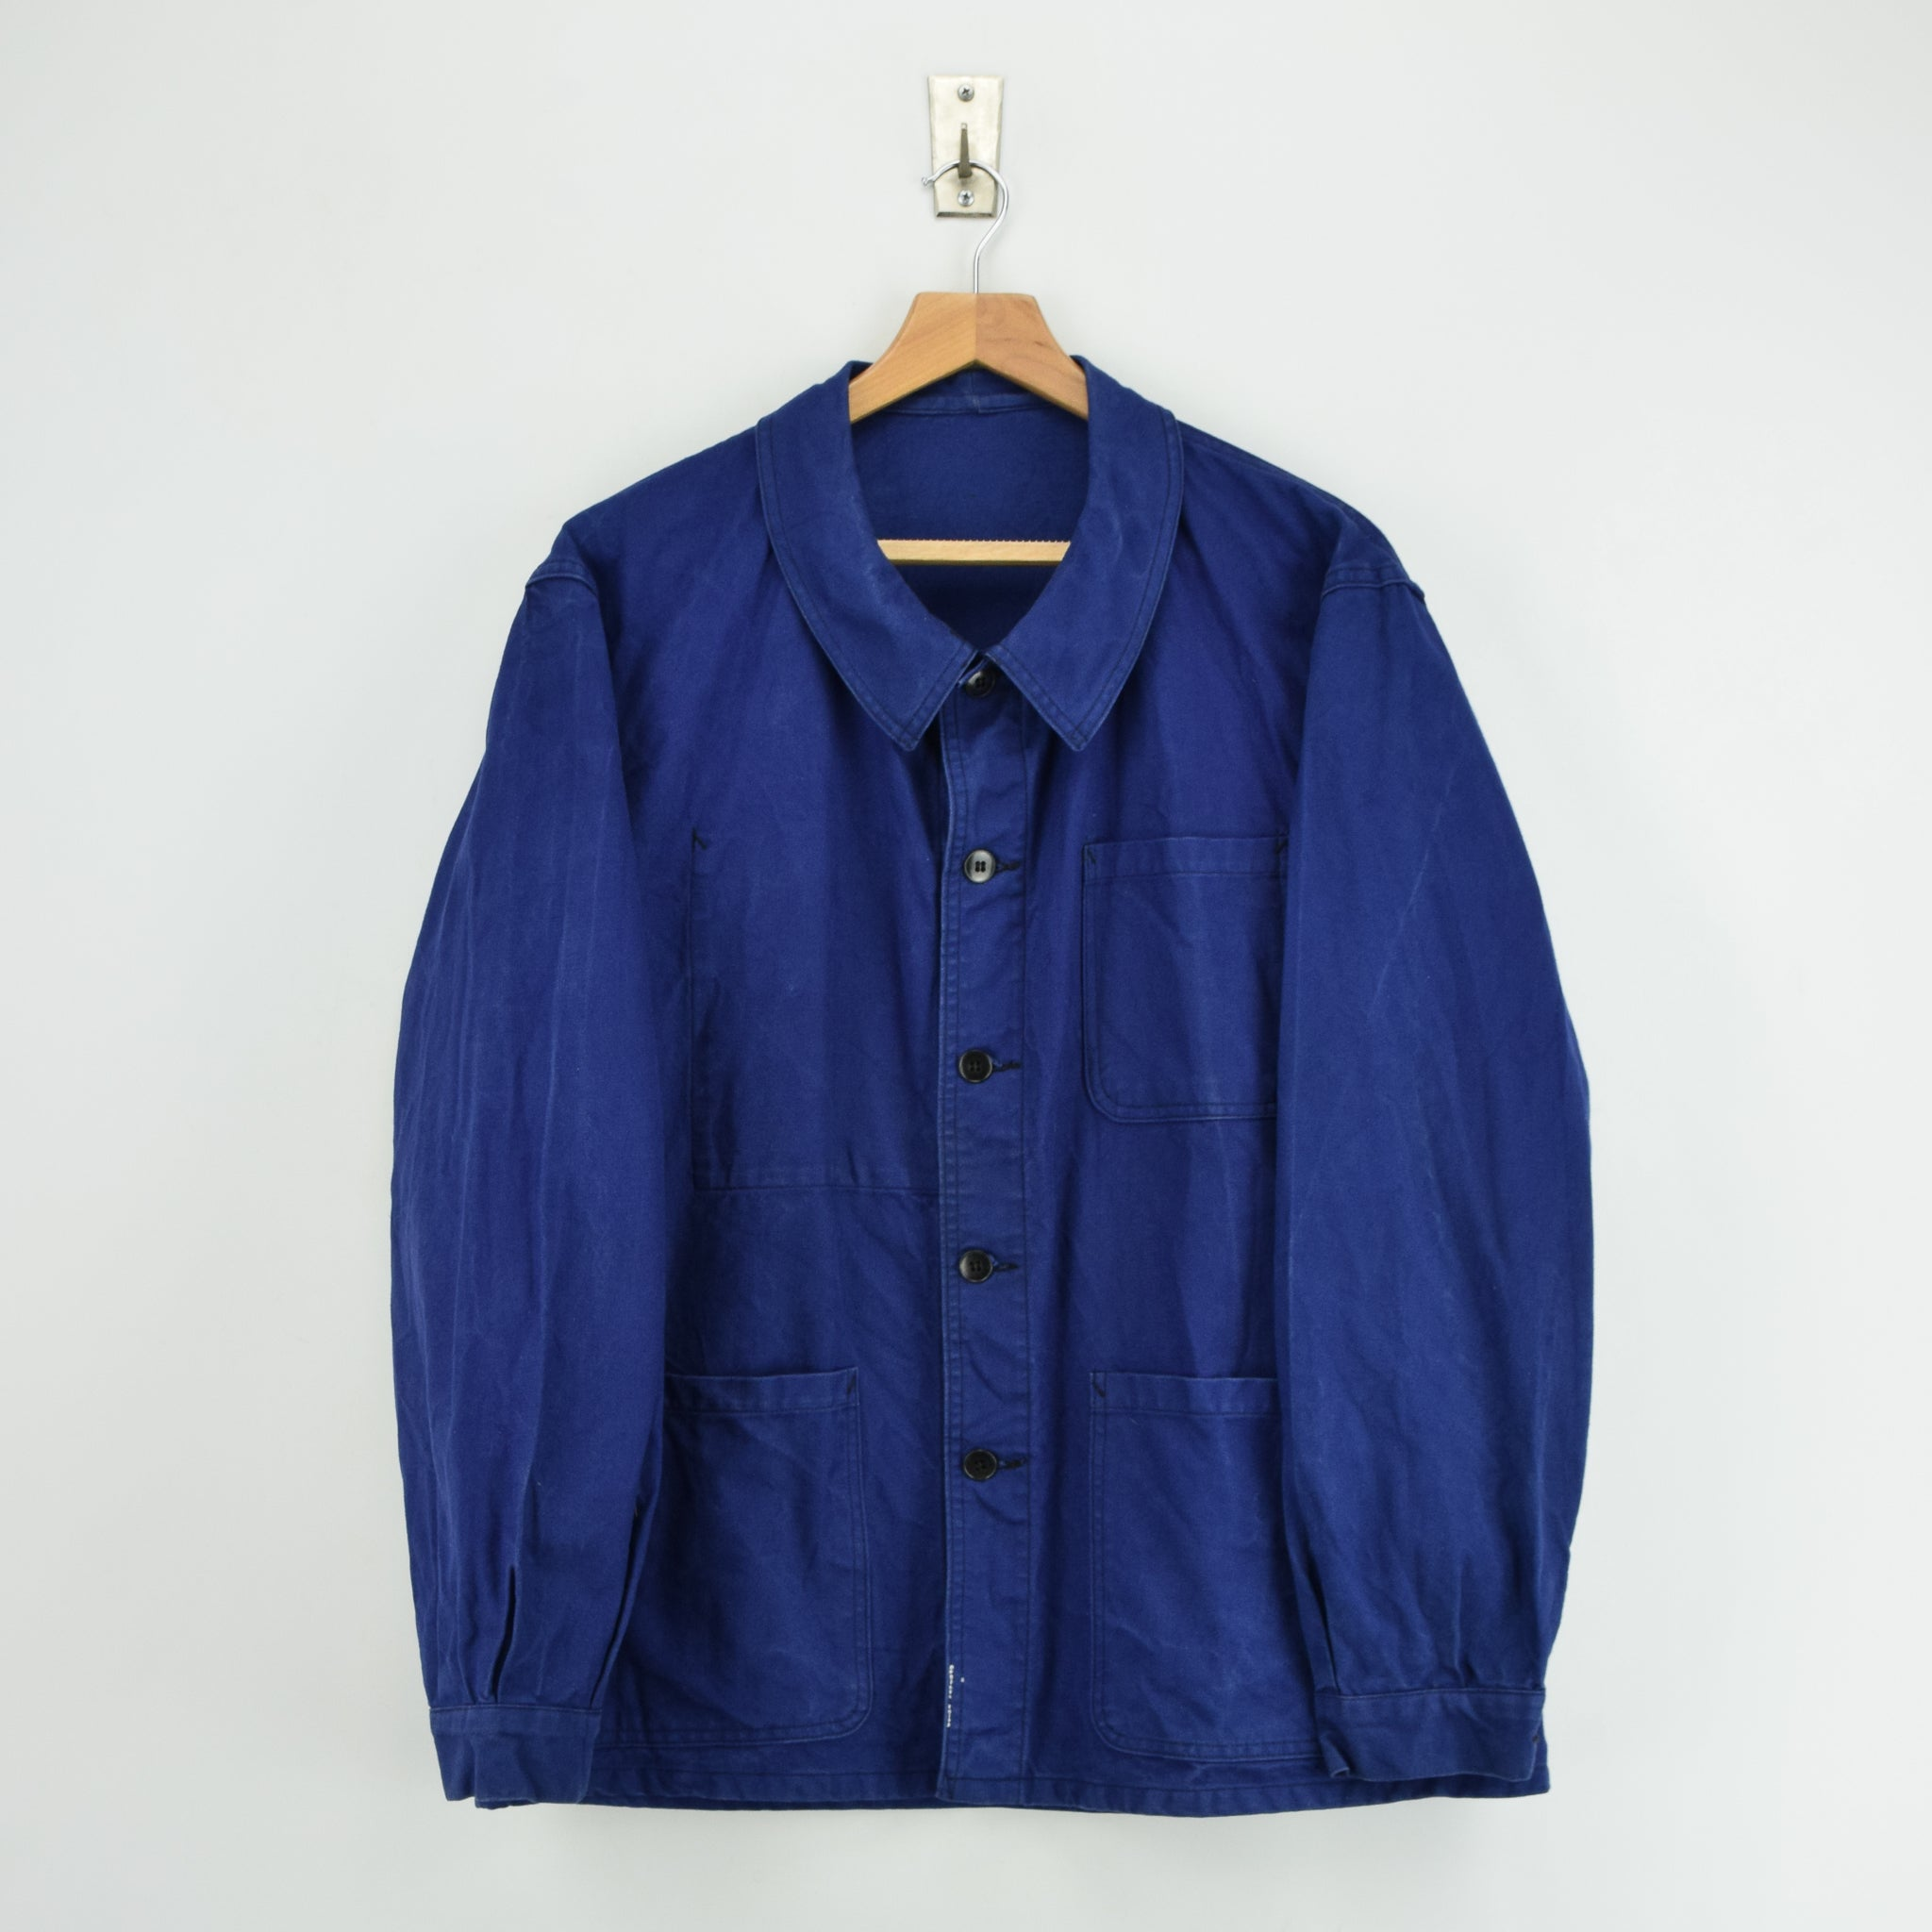 Vintage Indigo Blue French Worker Sanforized Cotton Chore Jacket L front